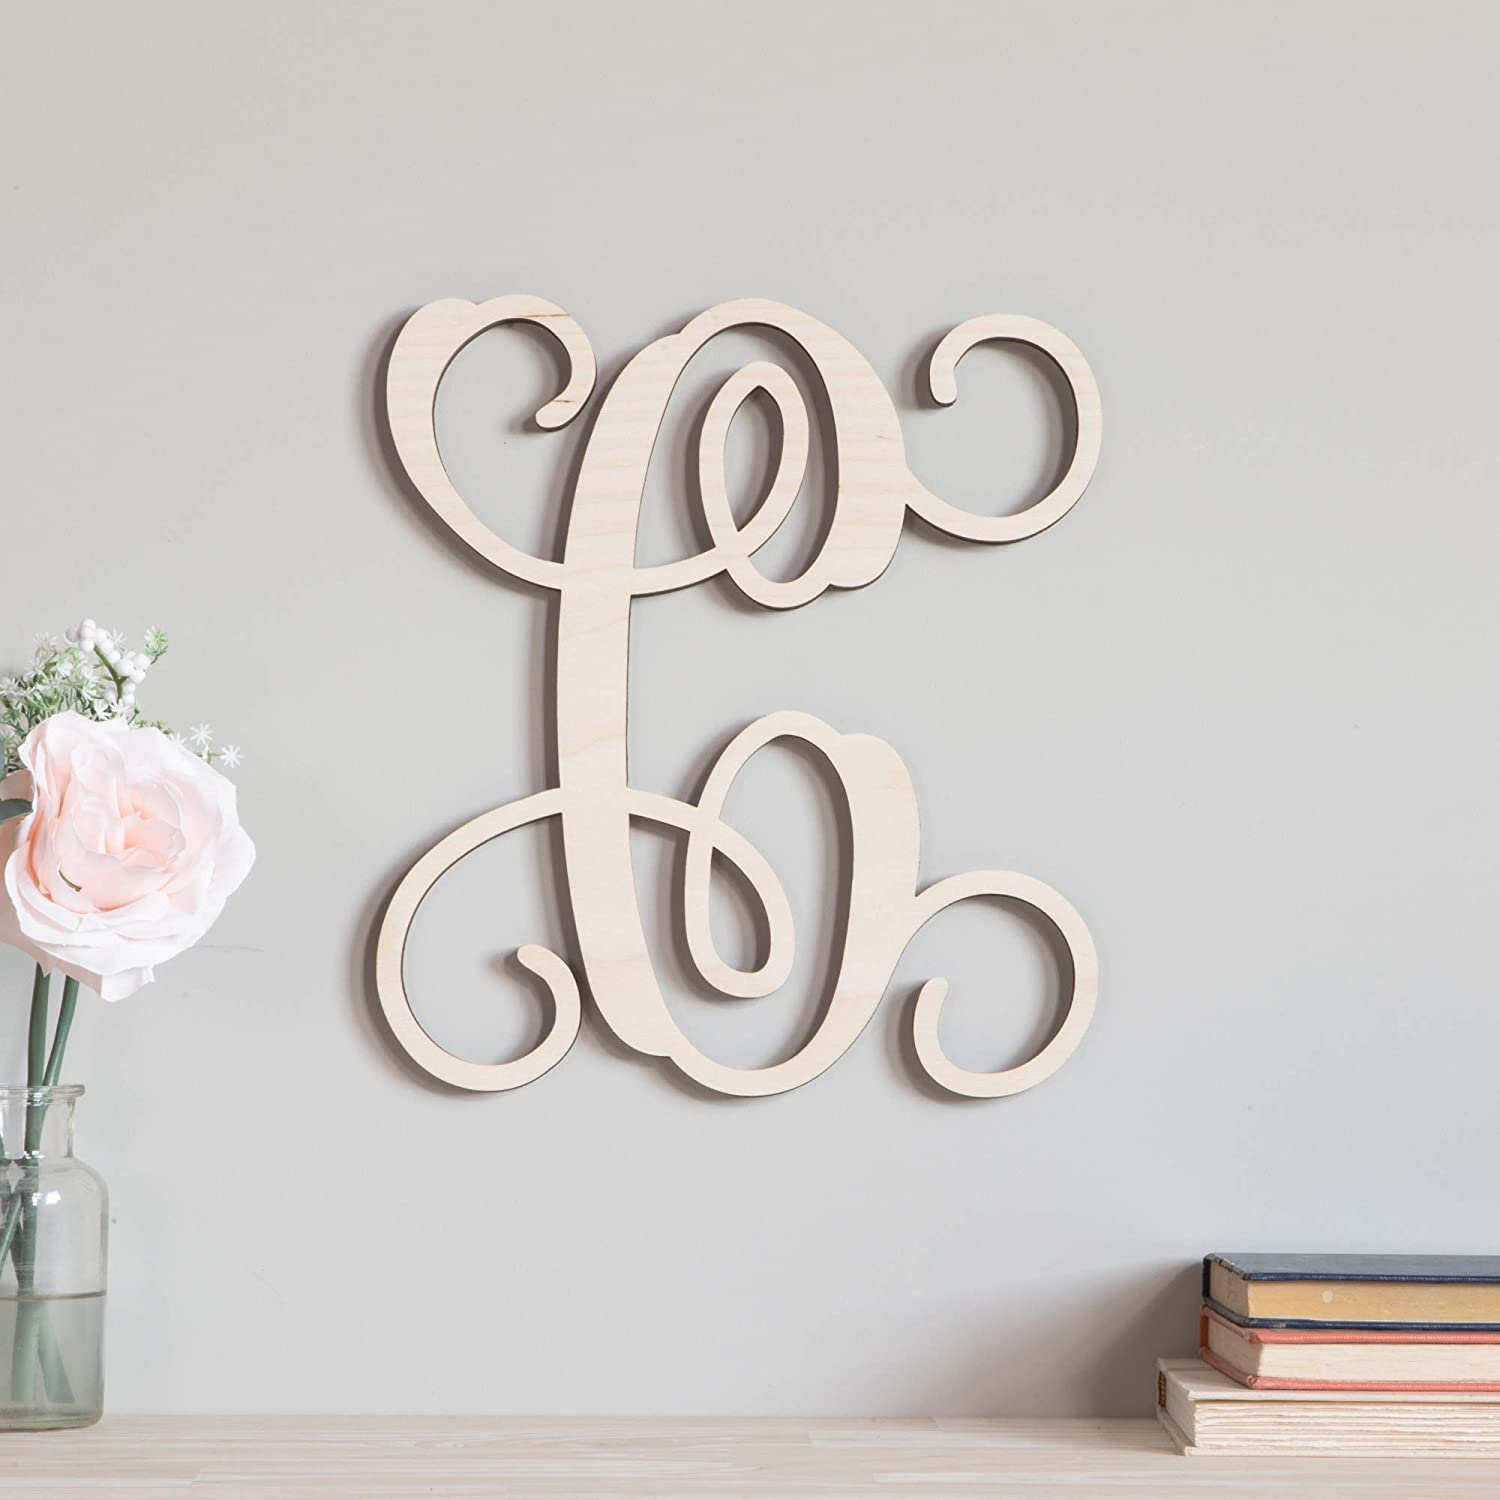 Large Monogram Letters Wall Decor from images-na.ssl-images-amazon.com